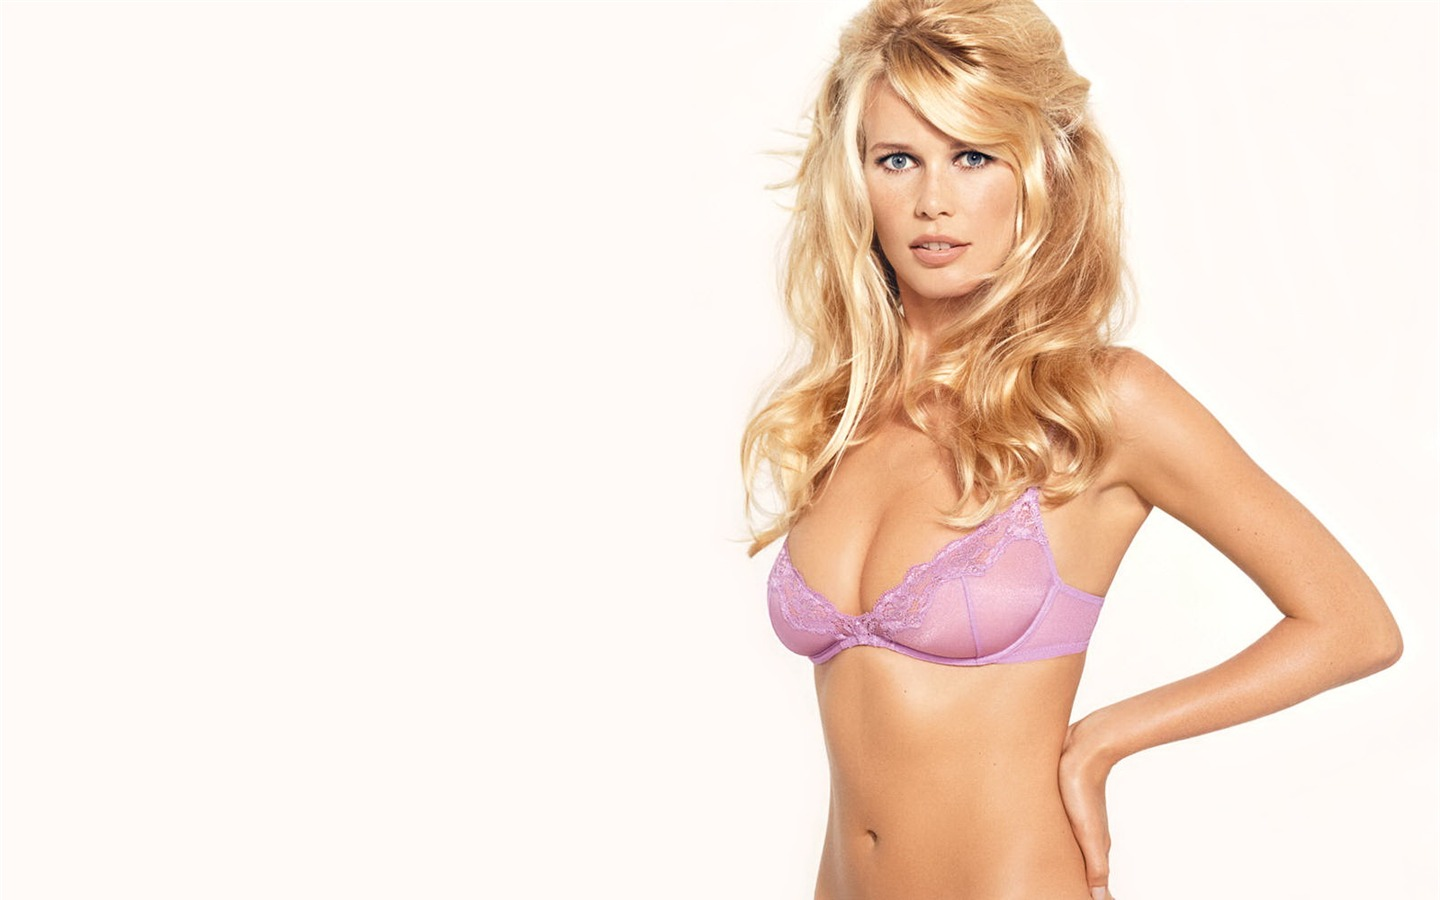 Claudia Schiffer #003 - 1440x900 Wallpapers Pictures Photos Images